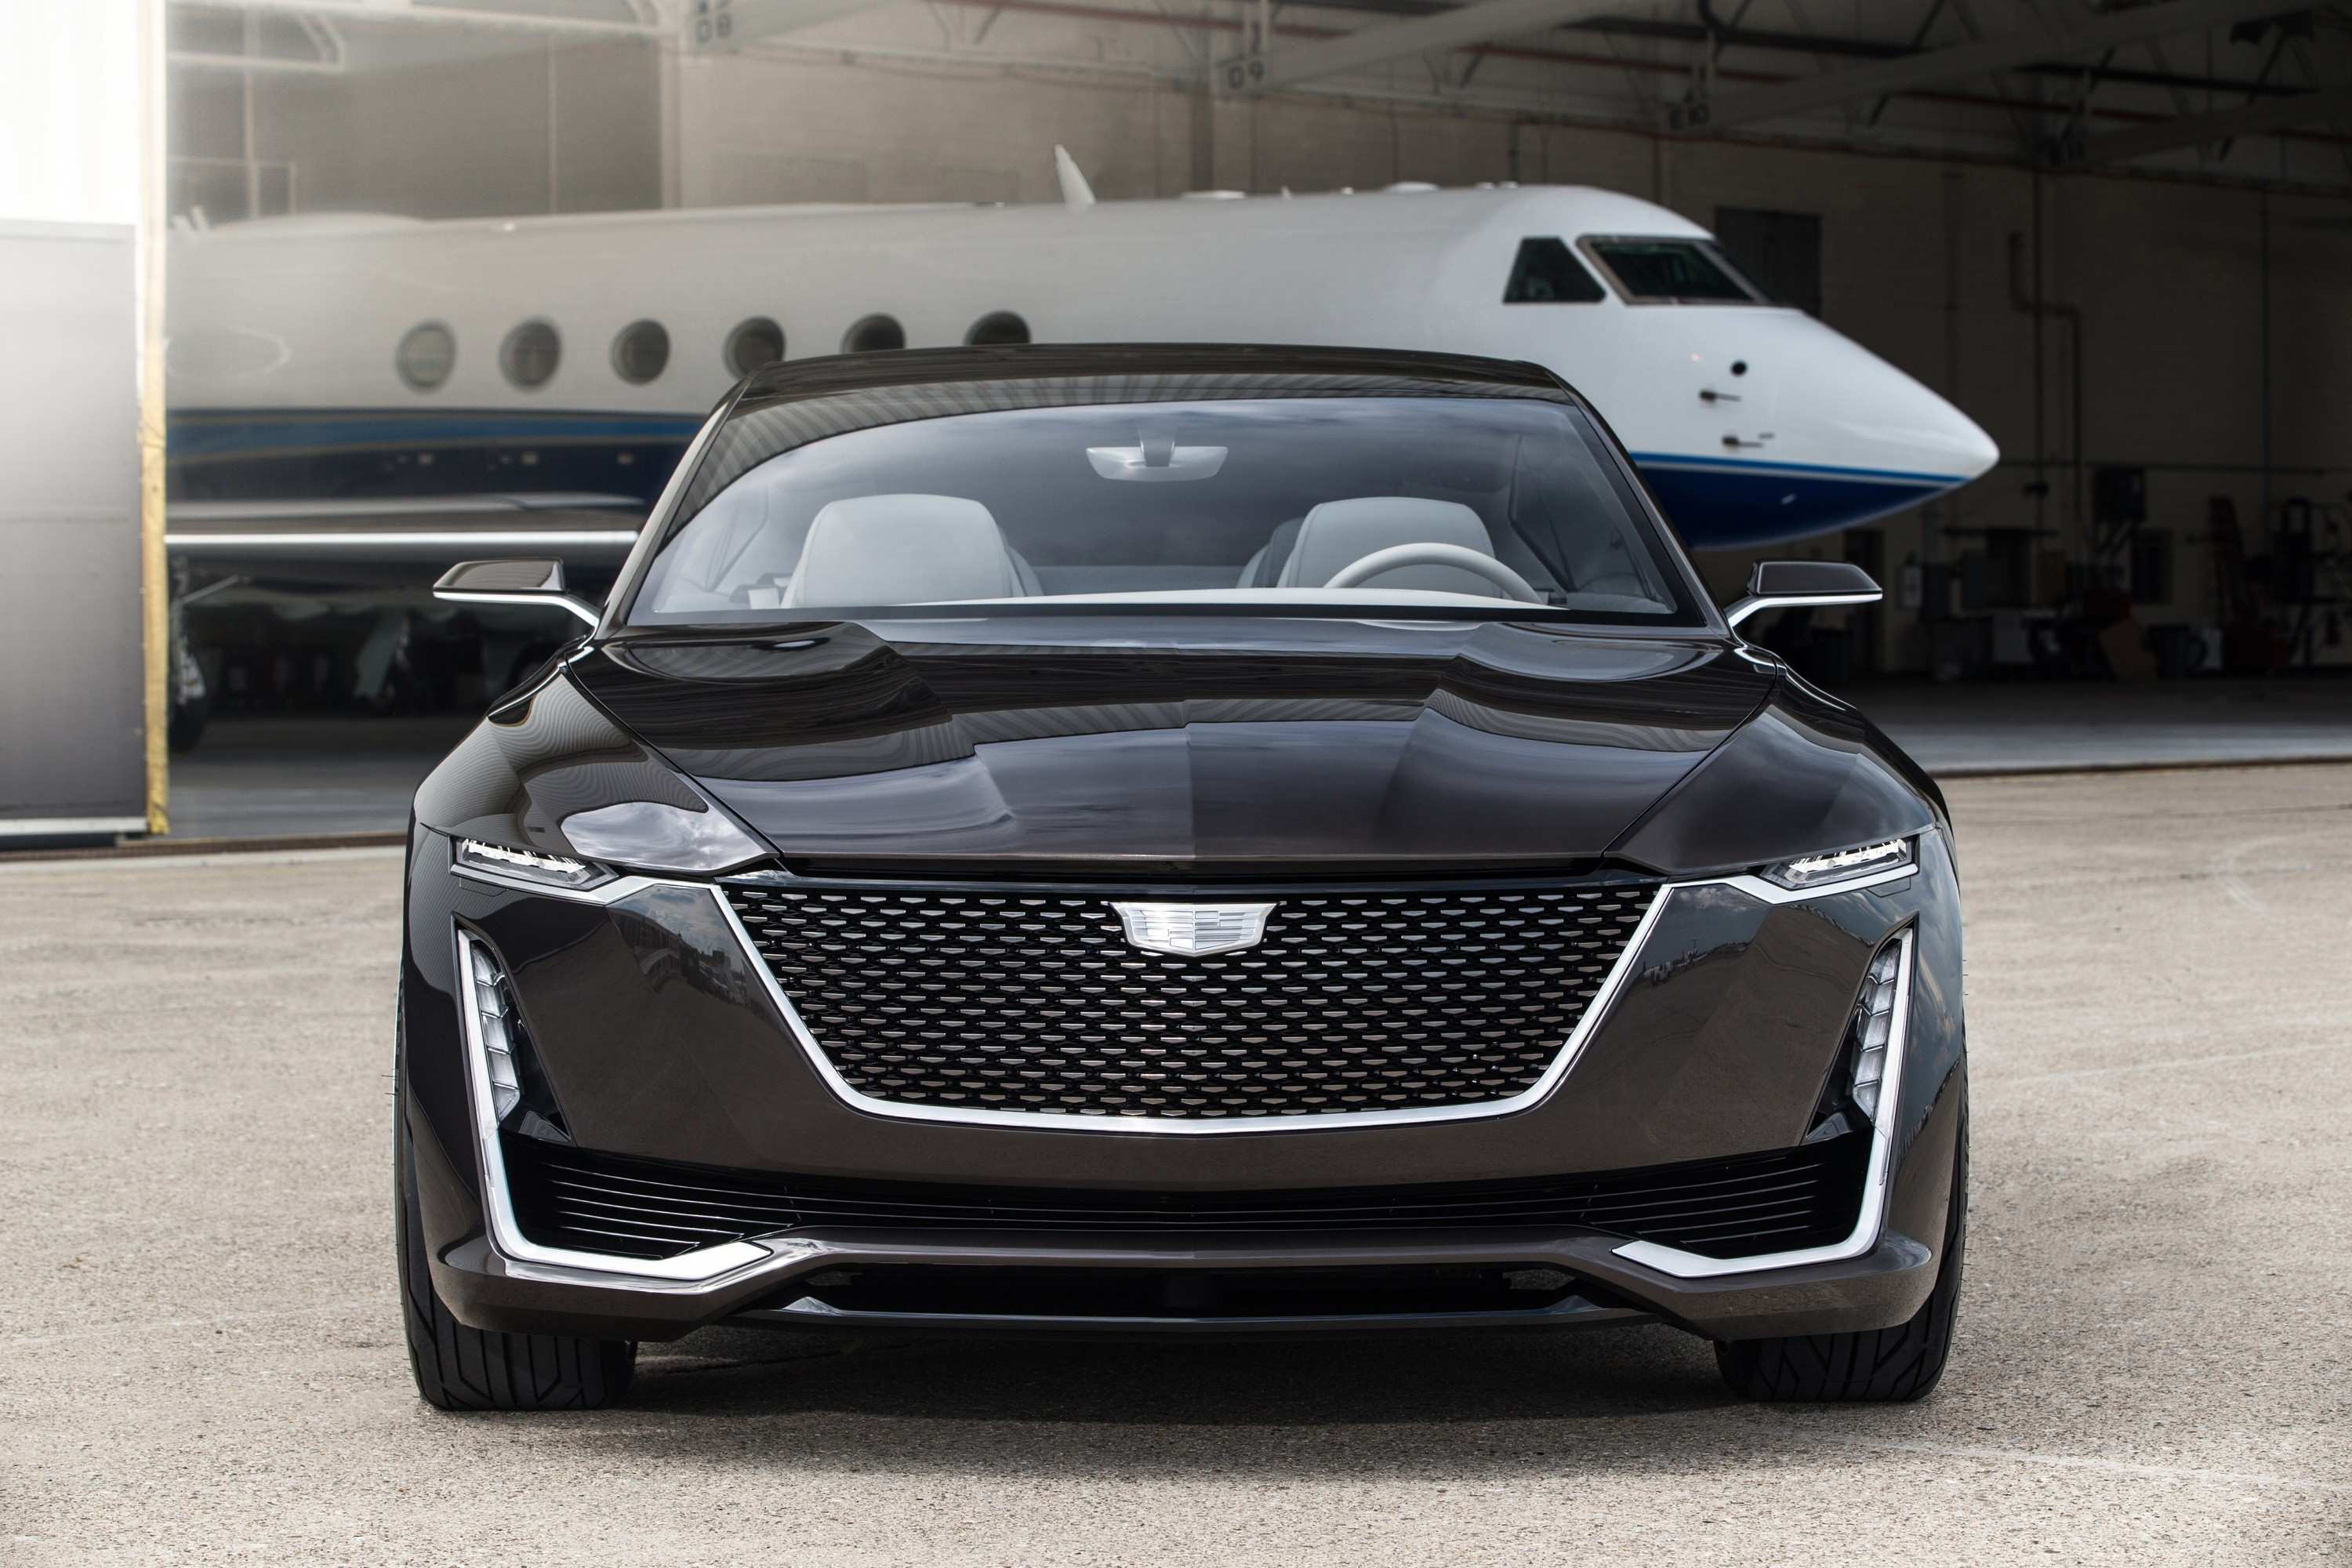 70 New Cadillac Vehicles 2020 Redesign with Cadillac Vehicles 2020